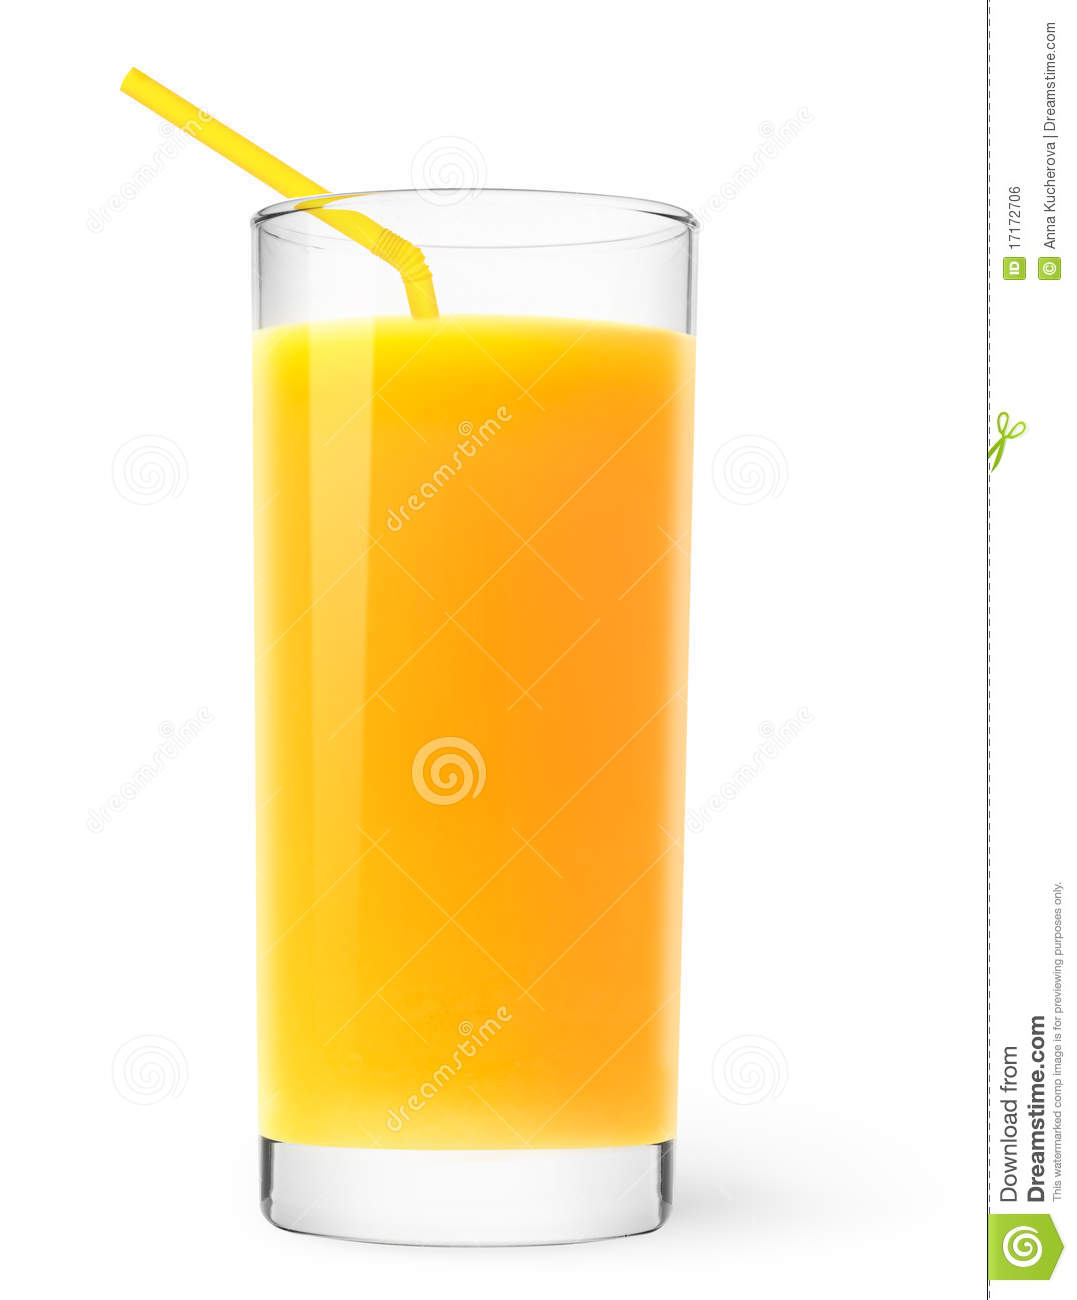 orange-juice-clipart-1ewXIg-clipart.jpg